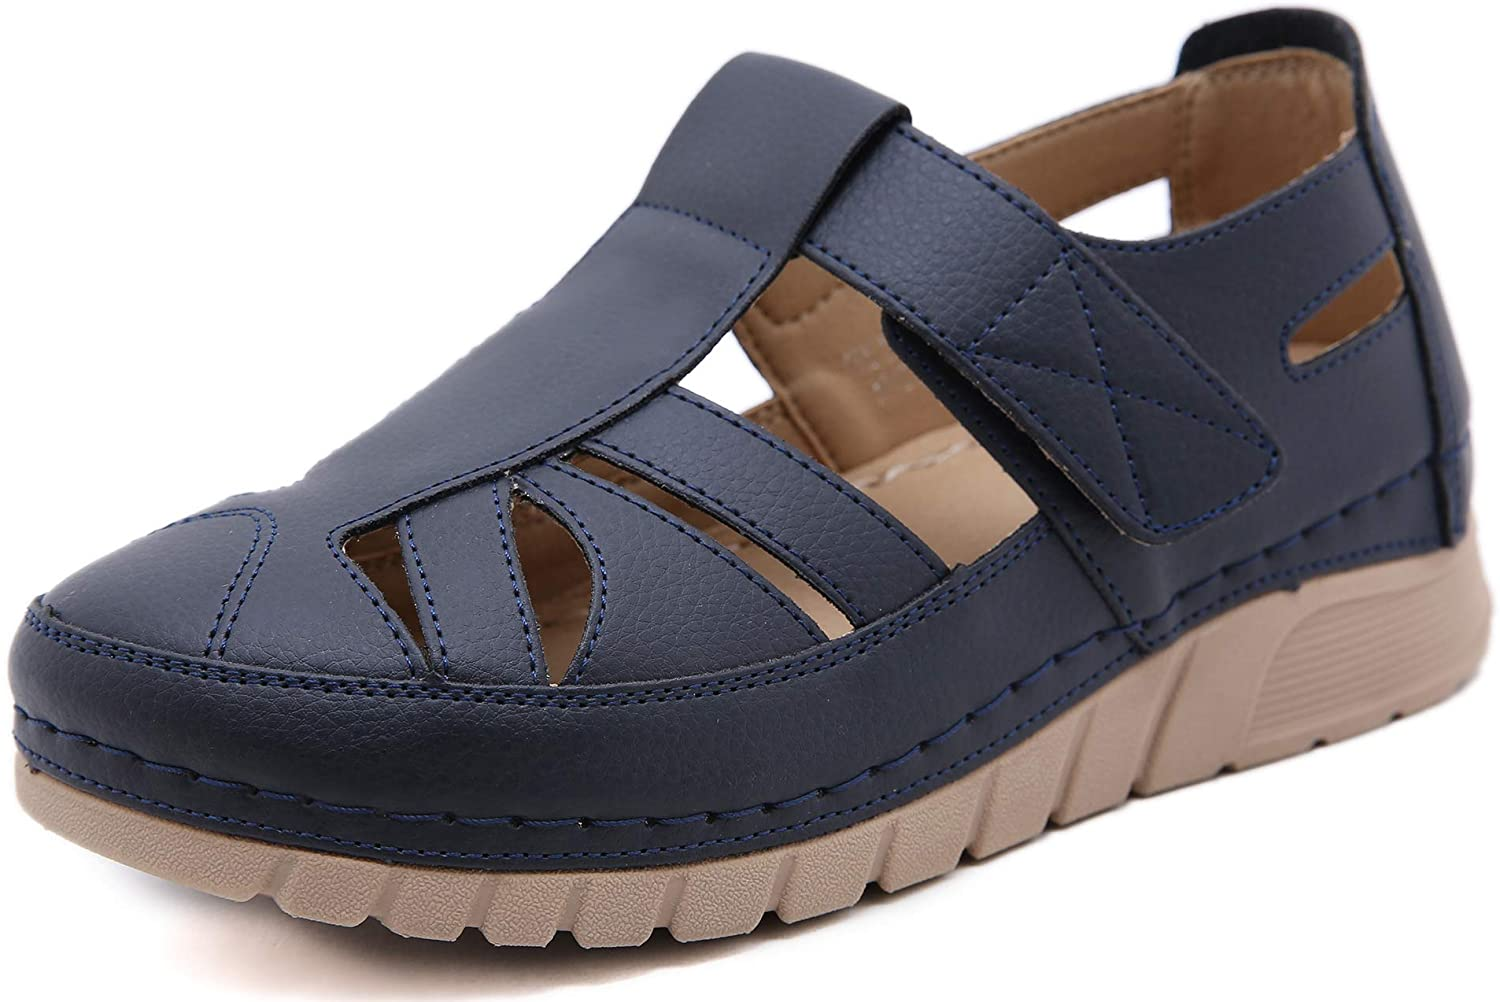 ChayChax Womens Closed Toe Sandals Comfortable Summer Wedge Shoe